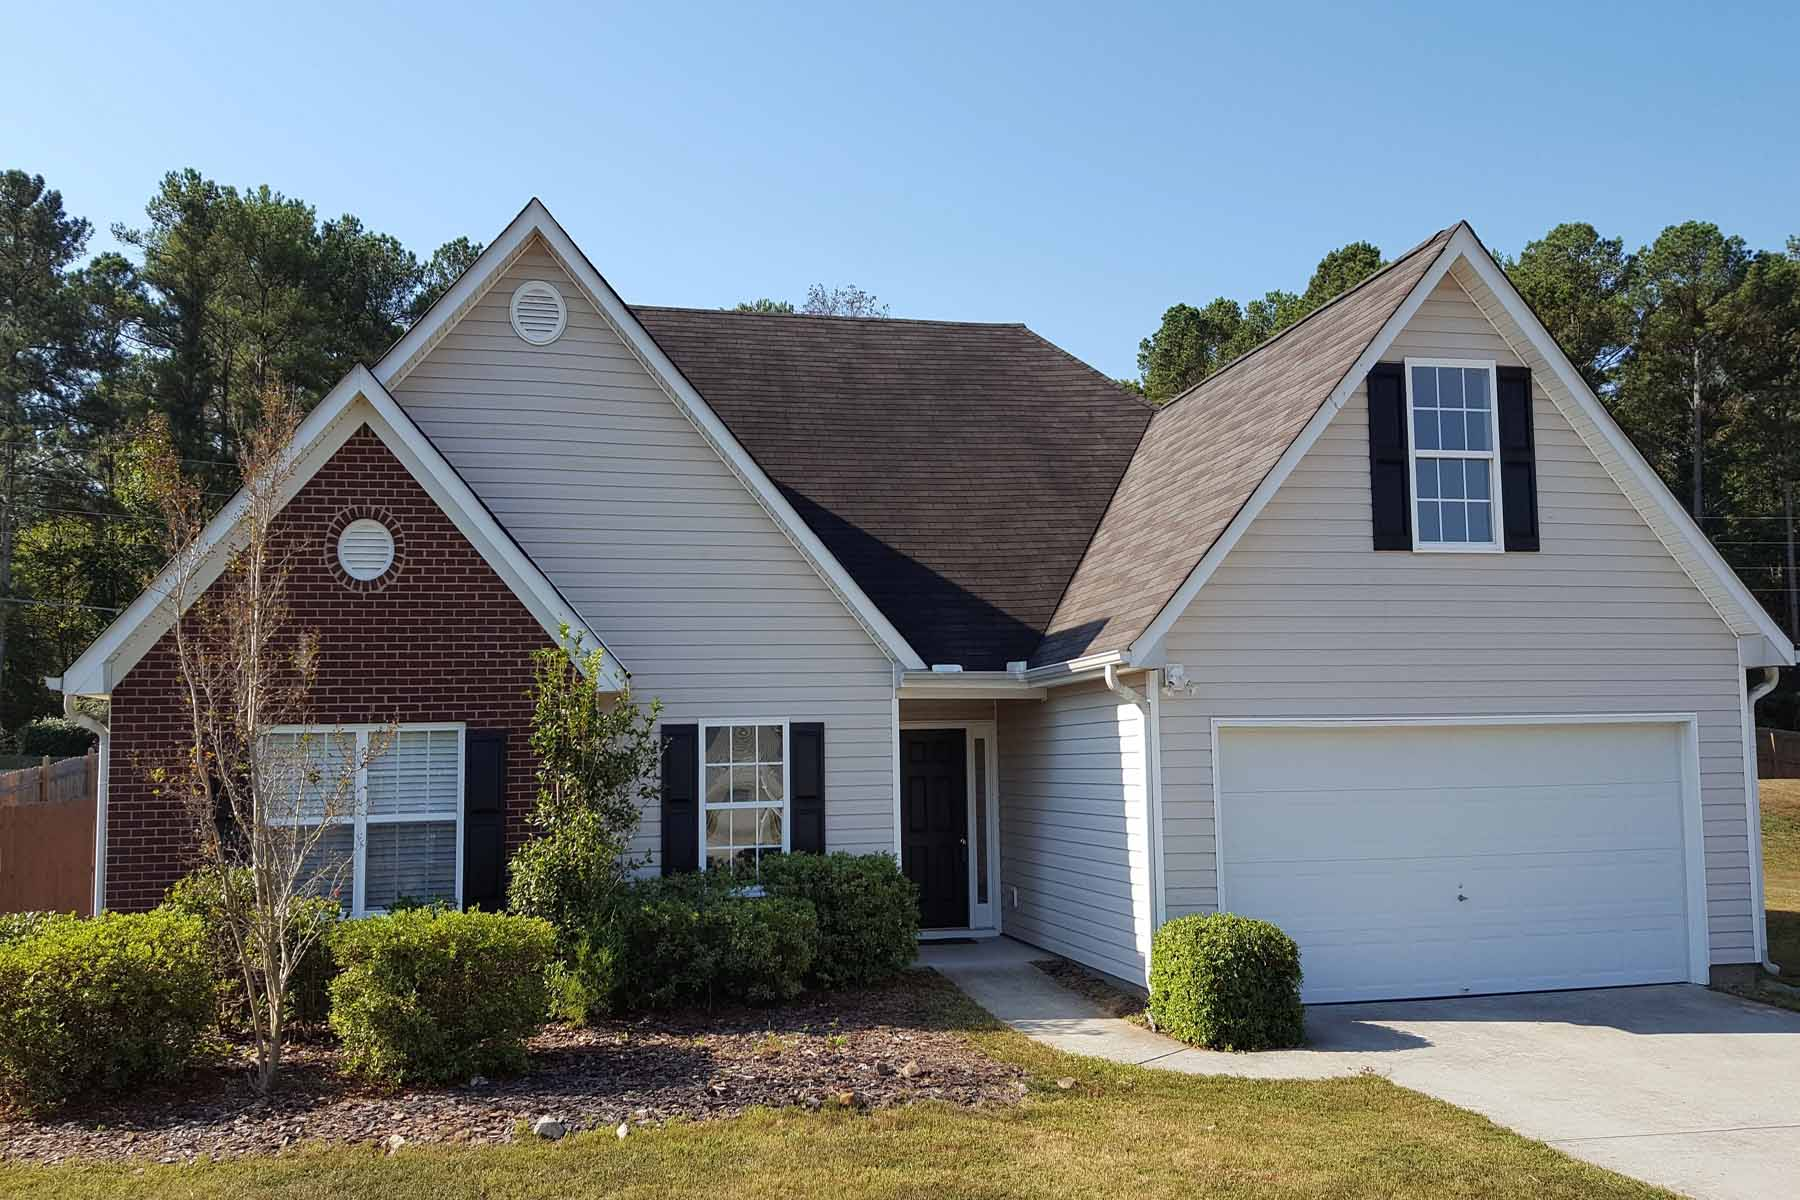 Villa per Vendita alle ore A Gwinnett Ranch Home with Bonus Room on Spacious Fenced Corner Lot 3396 Madison Ridge Trail Snellville, Georgia 30039 Stati Uniti